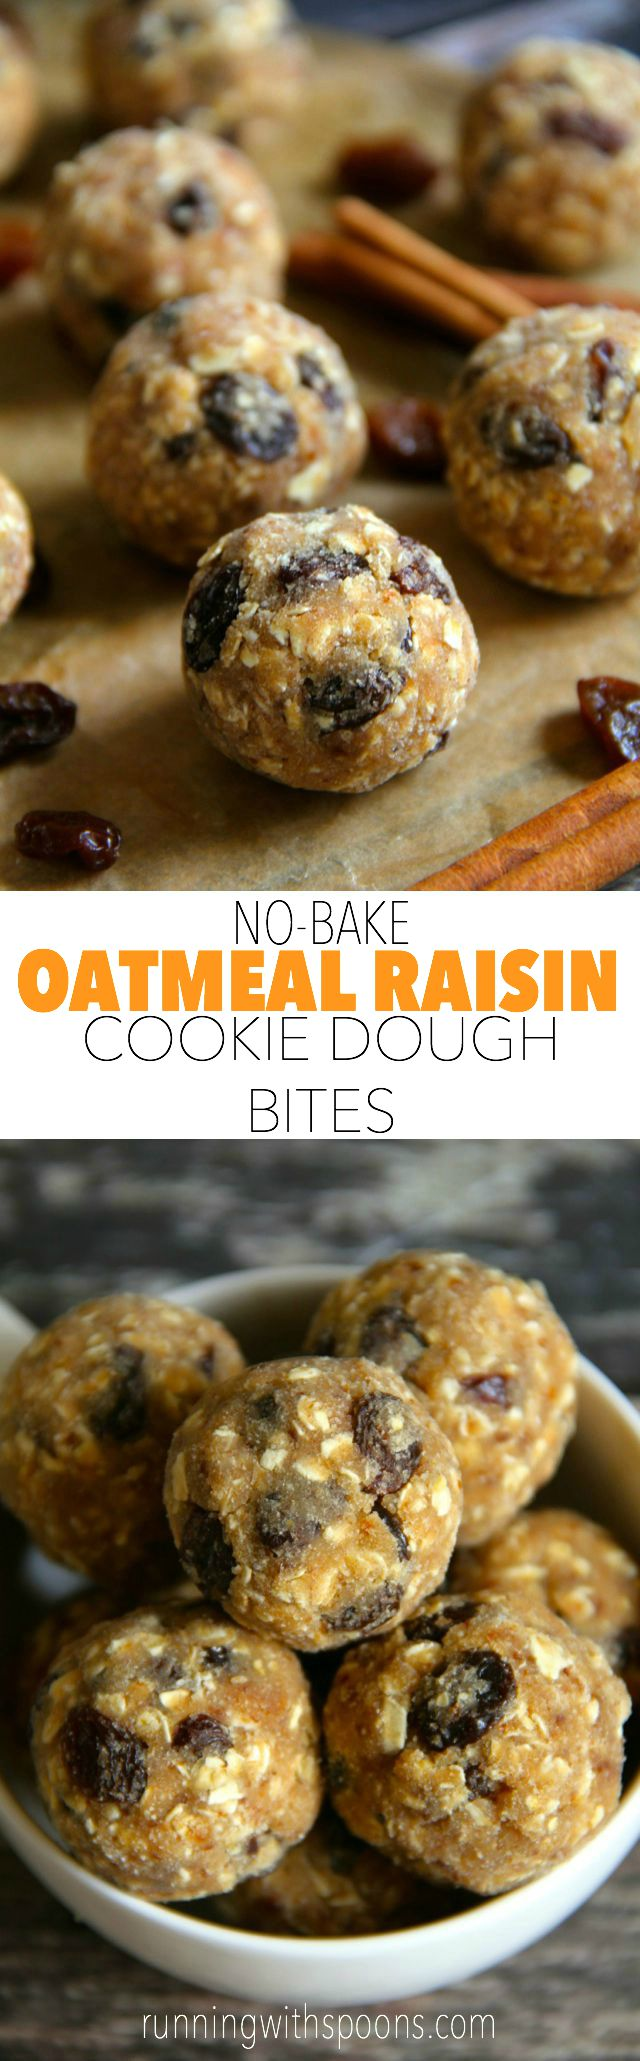 No Bake Oatmeal Raisin Cookie Dough Bites -- soft, chewy, and easy to make, these naturally gluten-free and vegan bites make a healthy and delicious snack for any time of the day    runningwithspoons.com #snack #vegan #bites